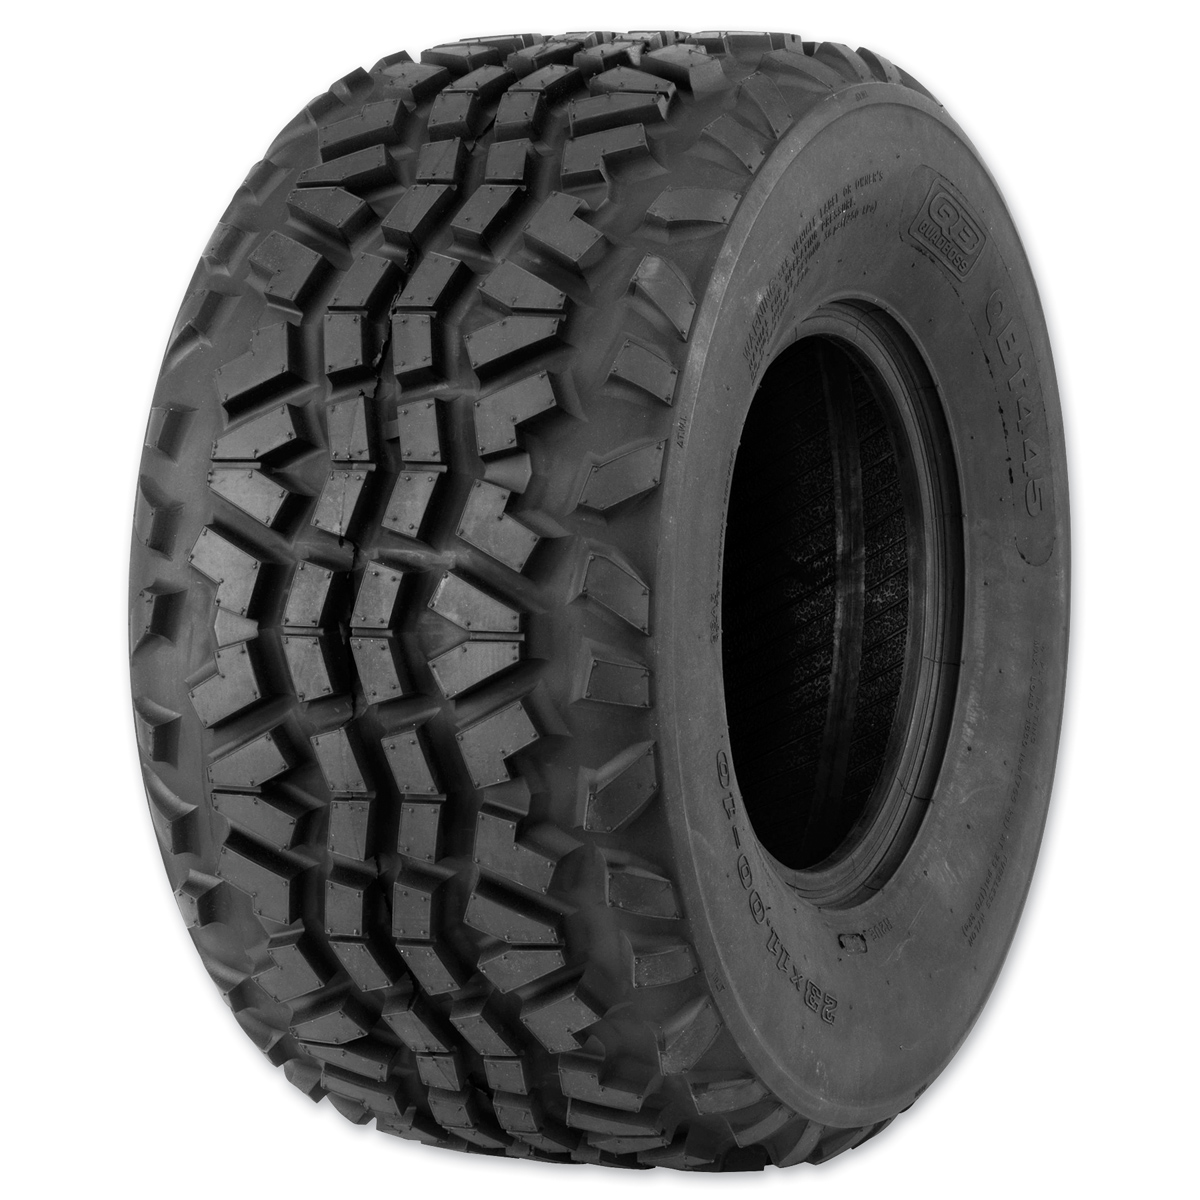 Quadboss QBT445 23X11-10 4-Ply Front/Rear Tire